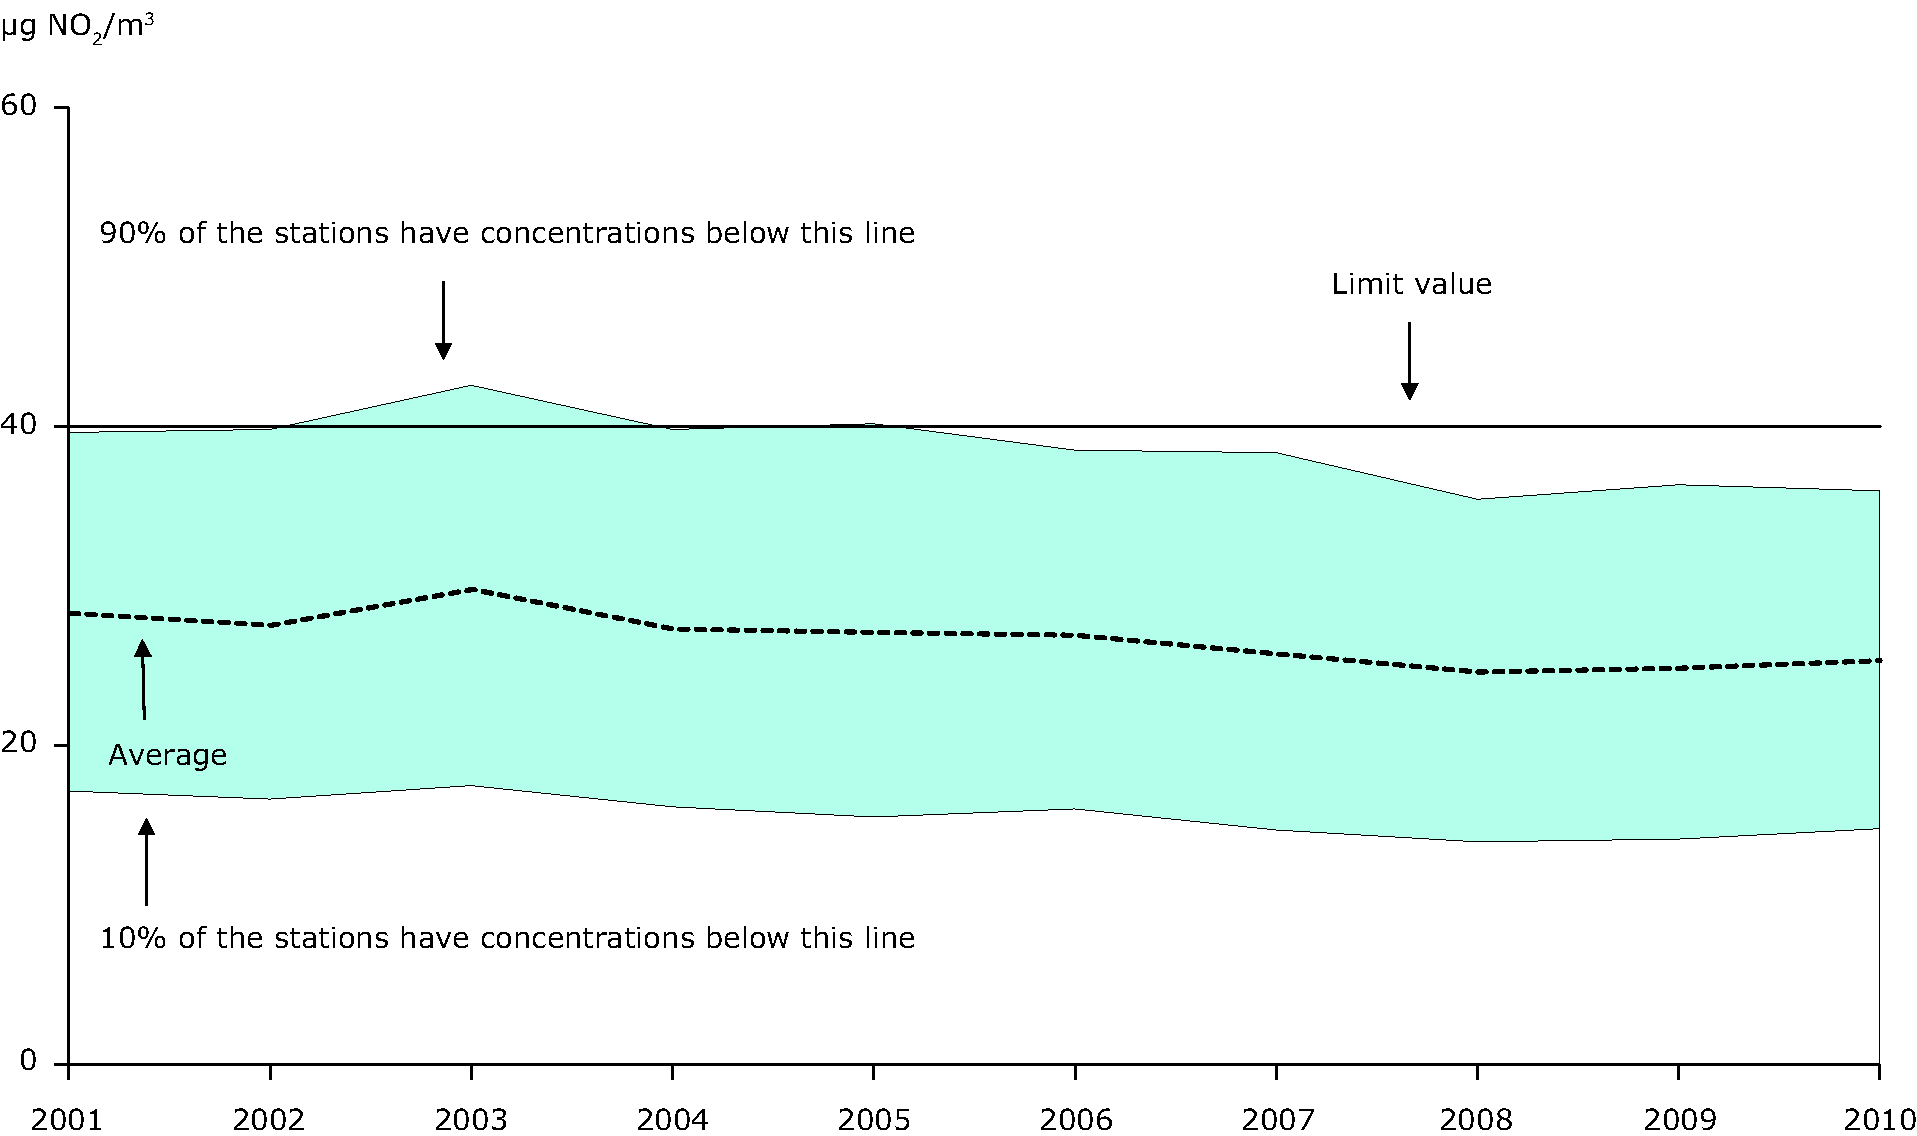 Annual mean NO2 concentration observed at urban background stations, 2001-2010 (EU-27)